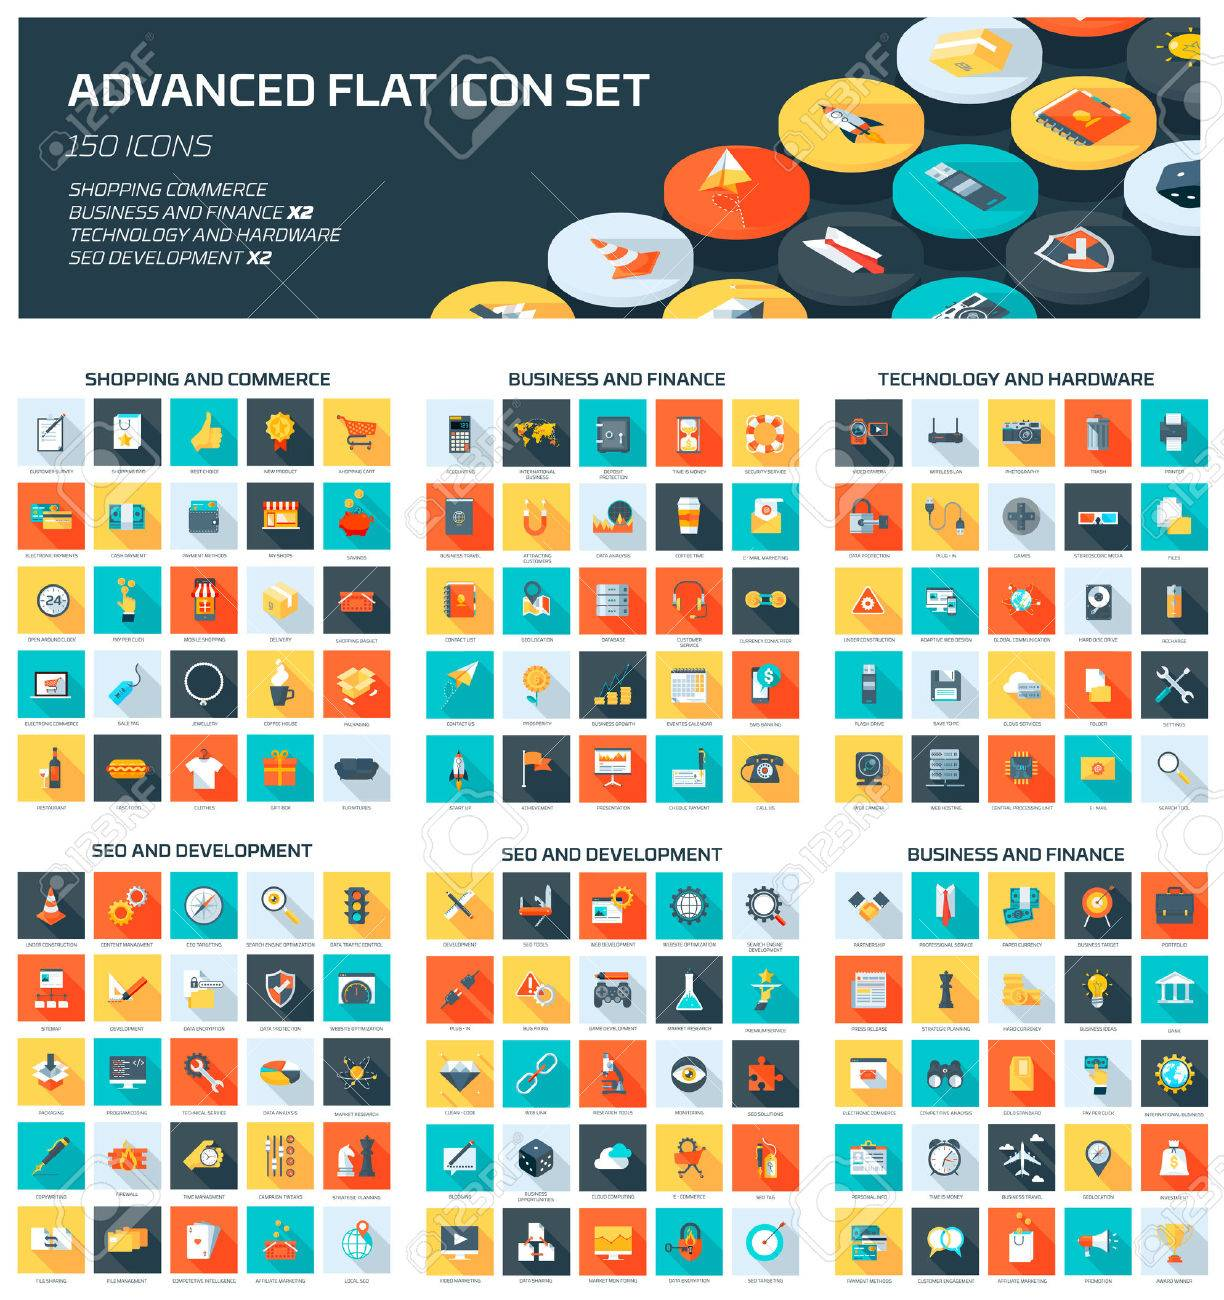 Advanced Web Icon Set flat style, colorful, vector icon set for info graphics, websites, mobile and print media. - 41709120